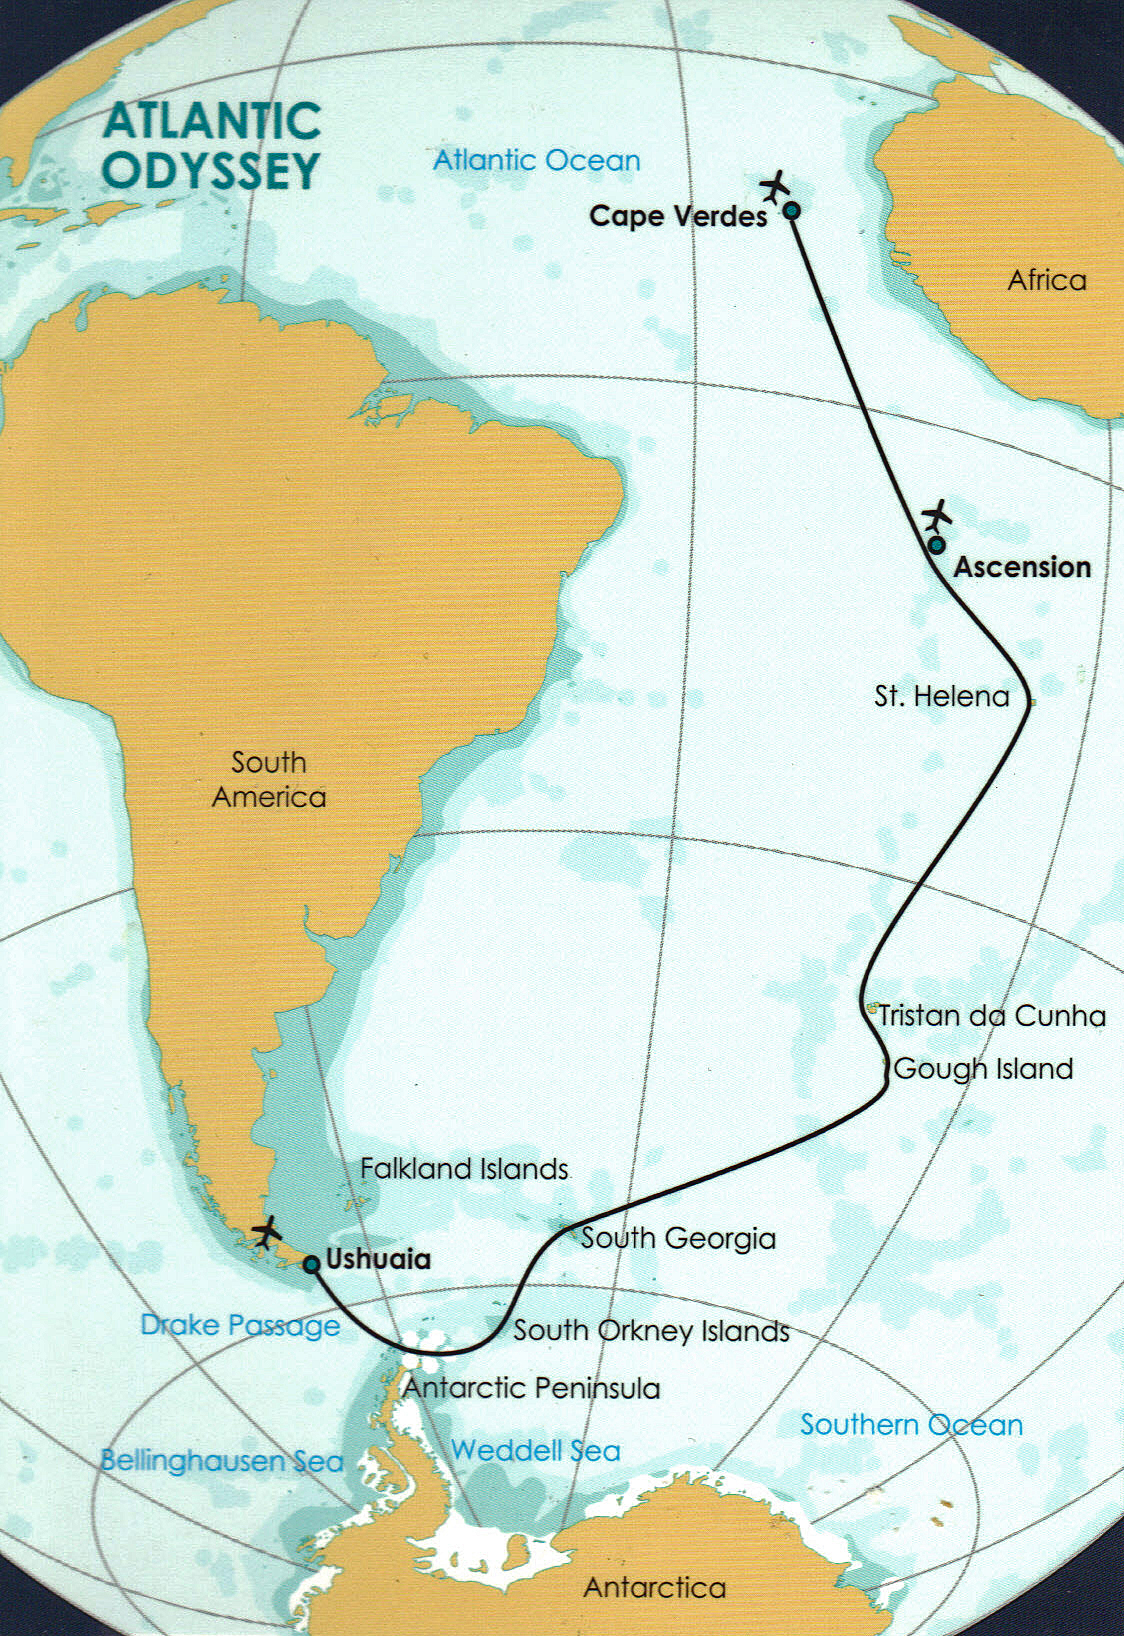 St Helena On World Map.St Helena Plover Gryllosblog